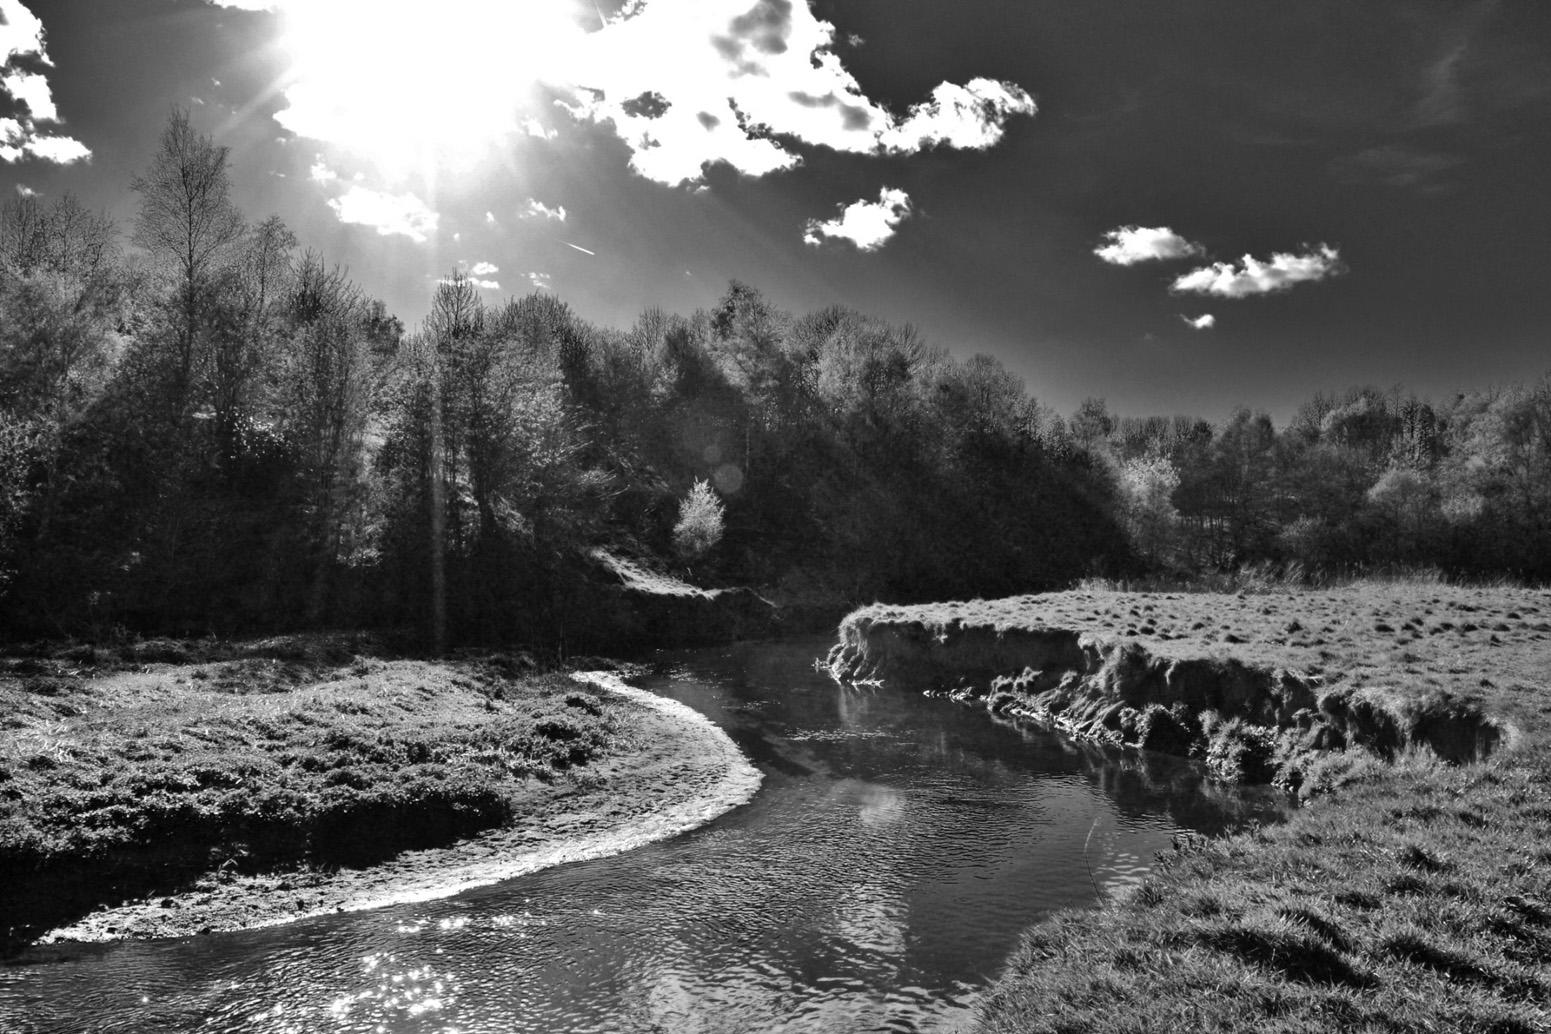 Sunshine on the Wince Brook in black & white